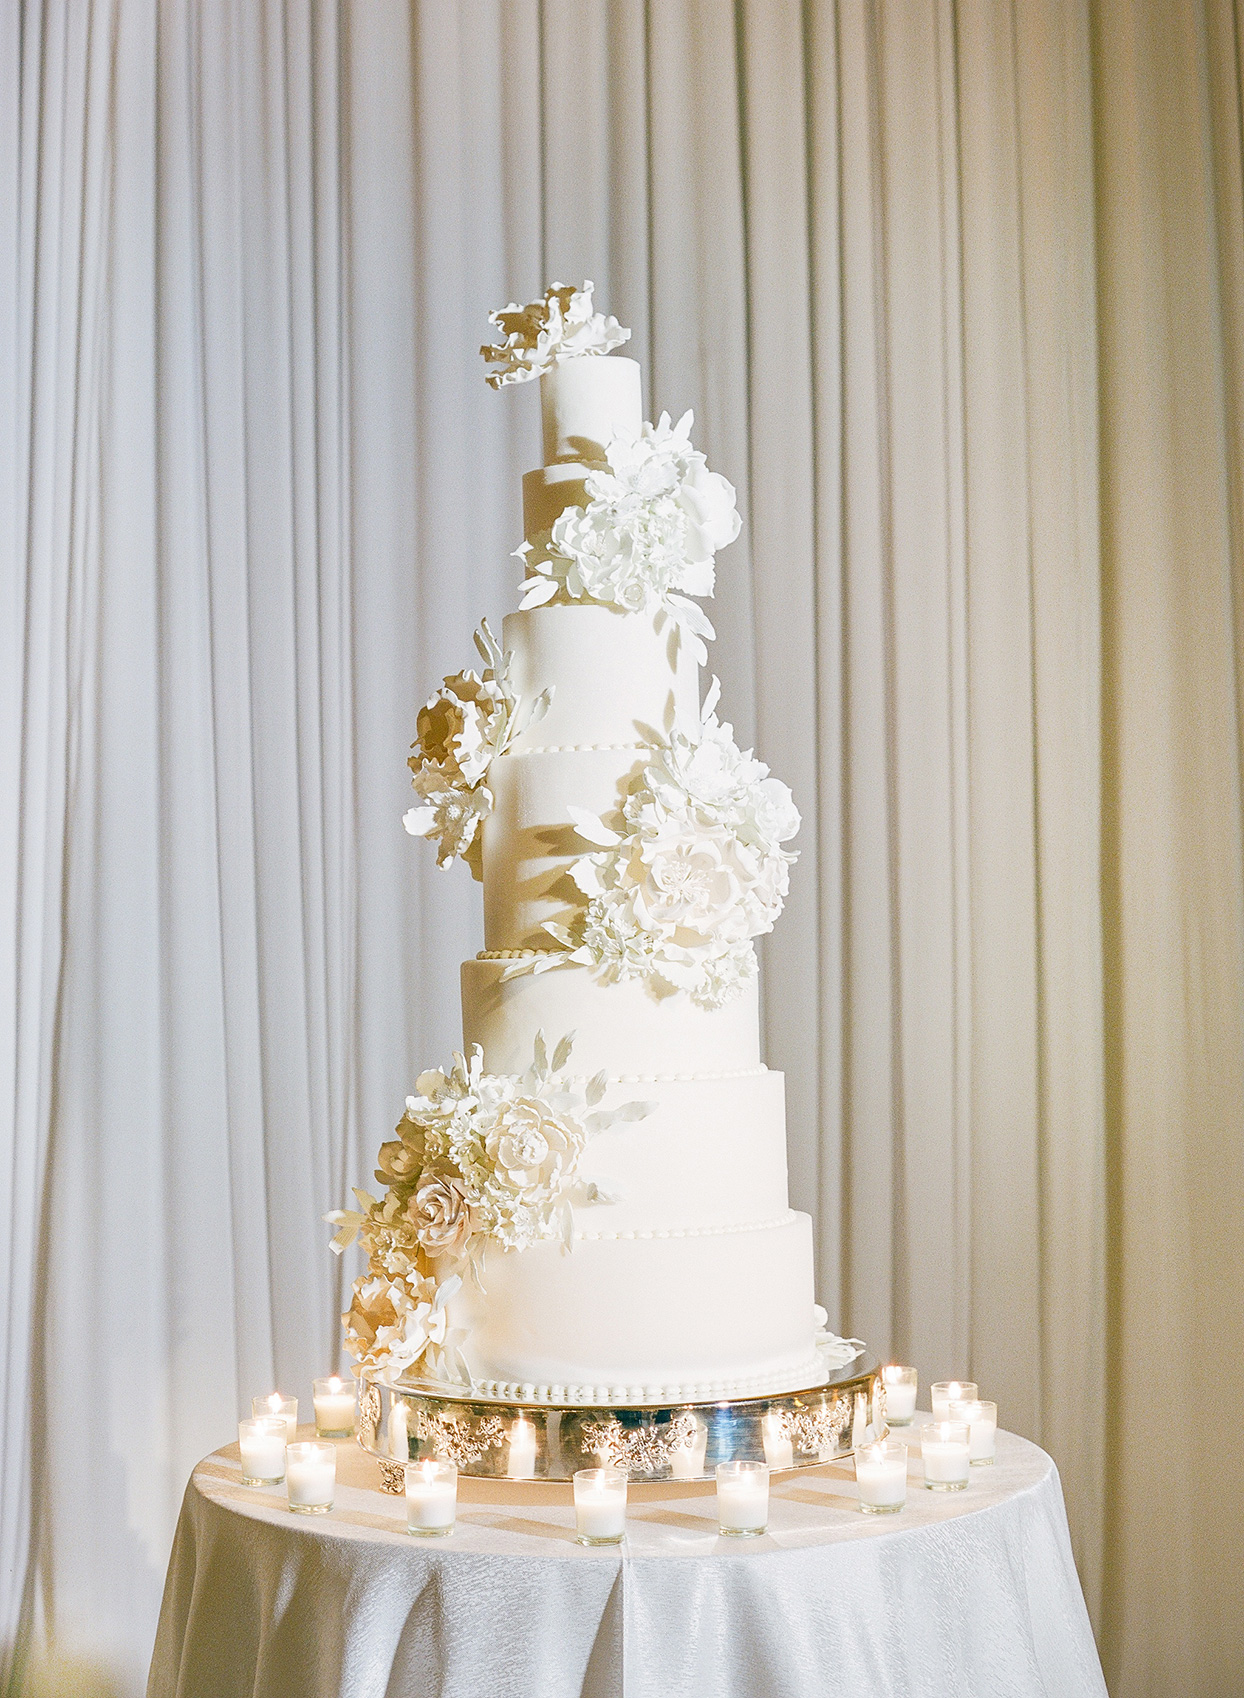 brittany brian wedding tall cake with floral decor